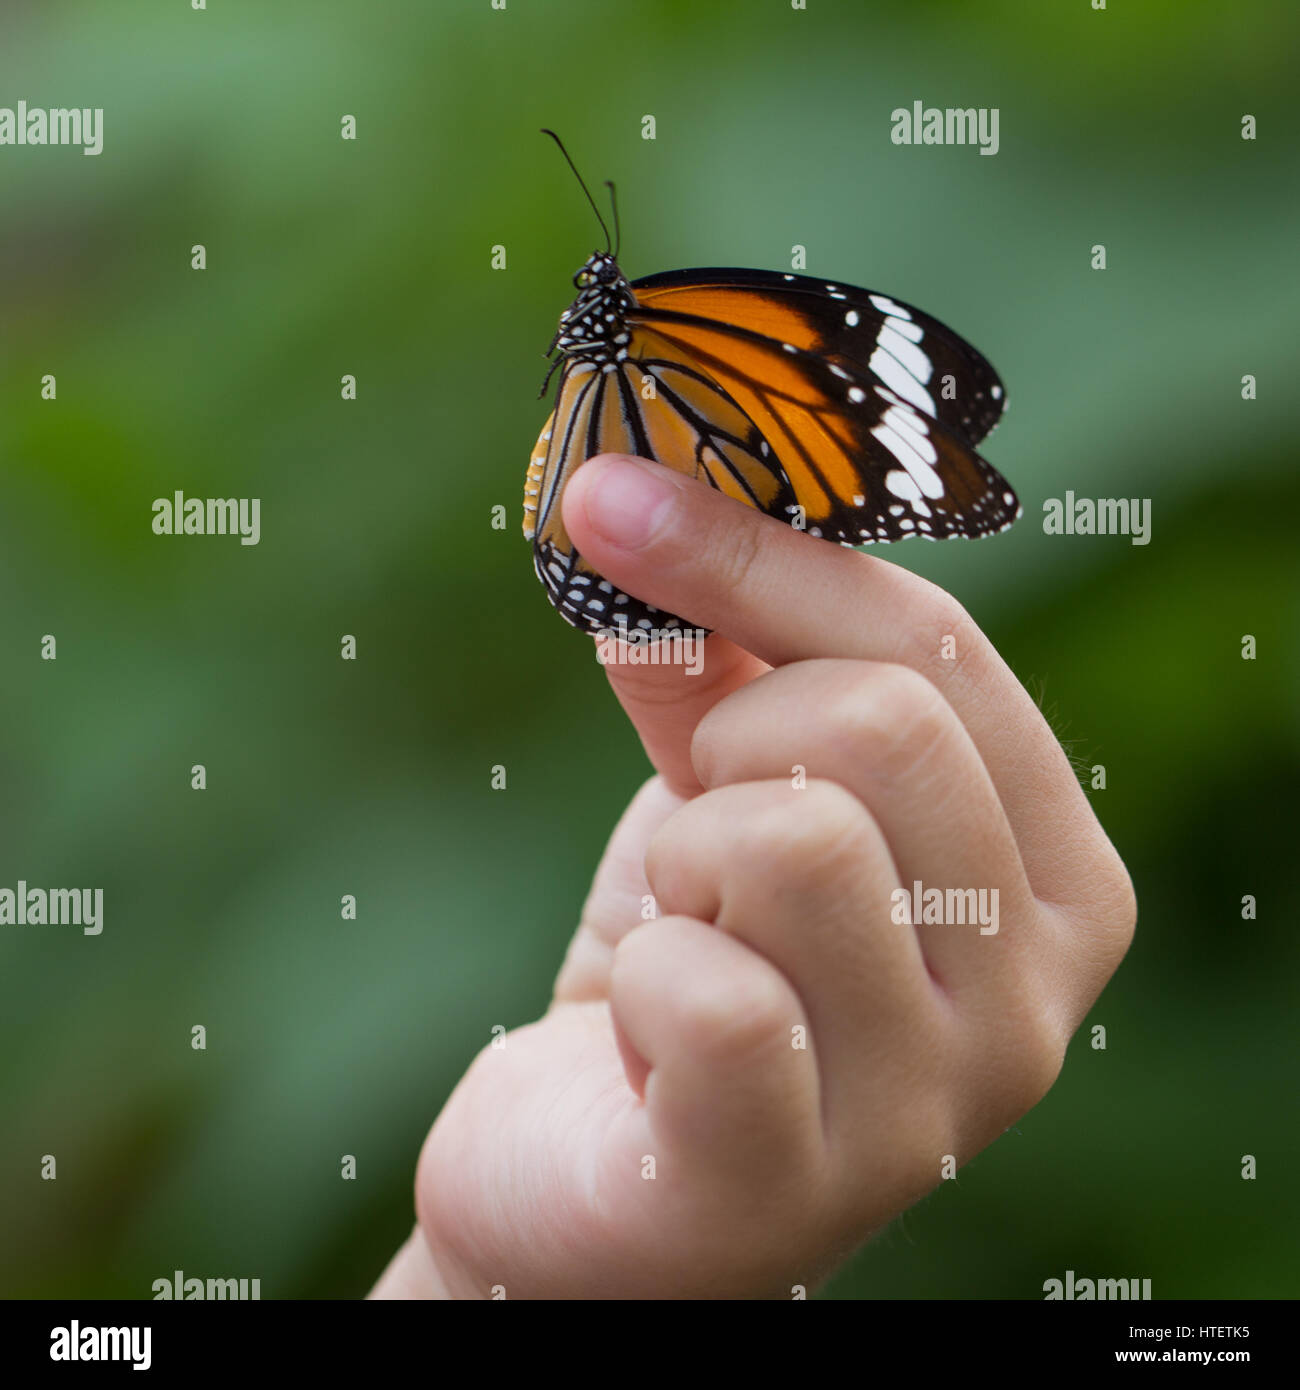 Uncategorized Butterfly Hand beautiful butterfly sitting on the girl hand stock photo royalty hand